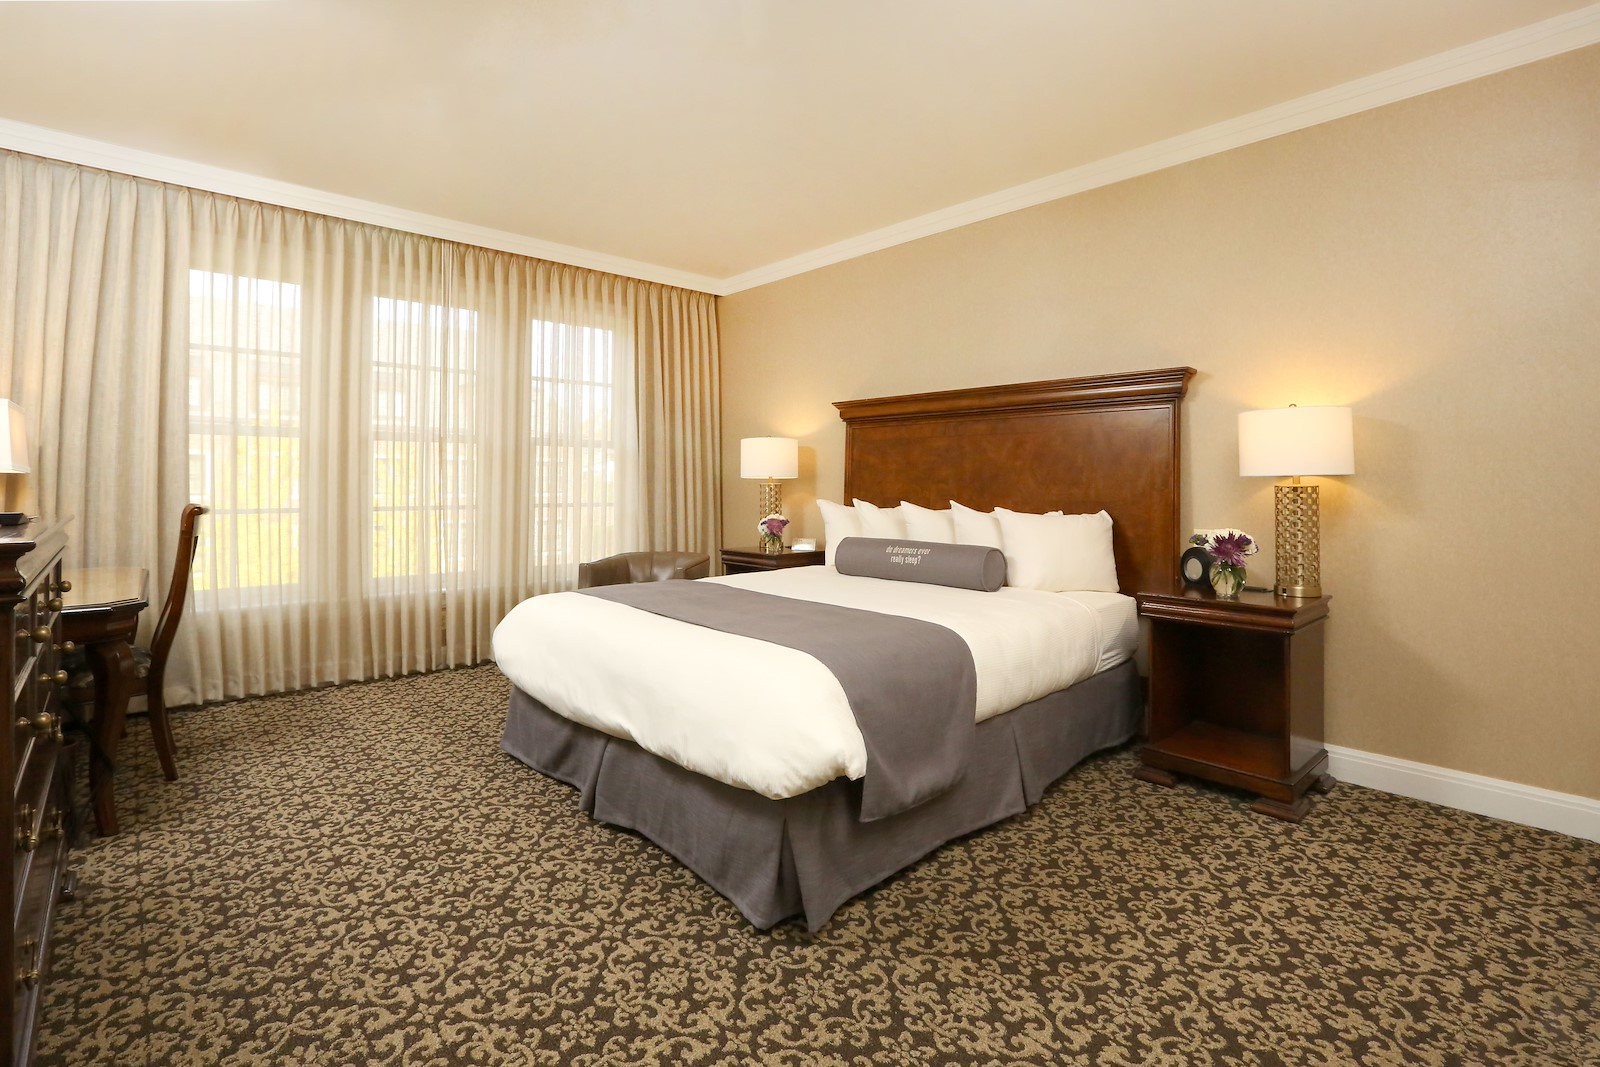 Executive King Guest Room at Royal Park Hotel in Rochester Michigan